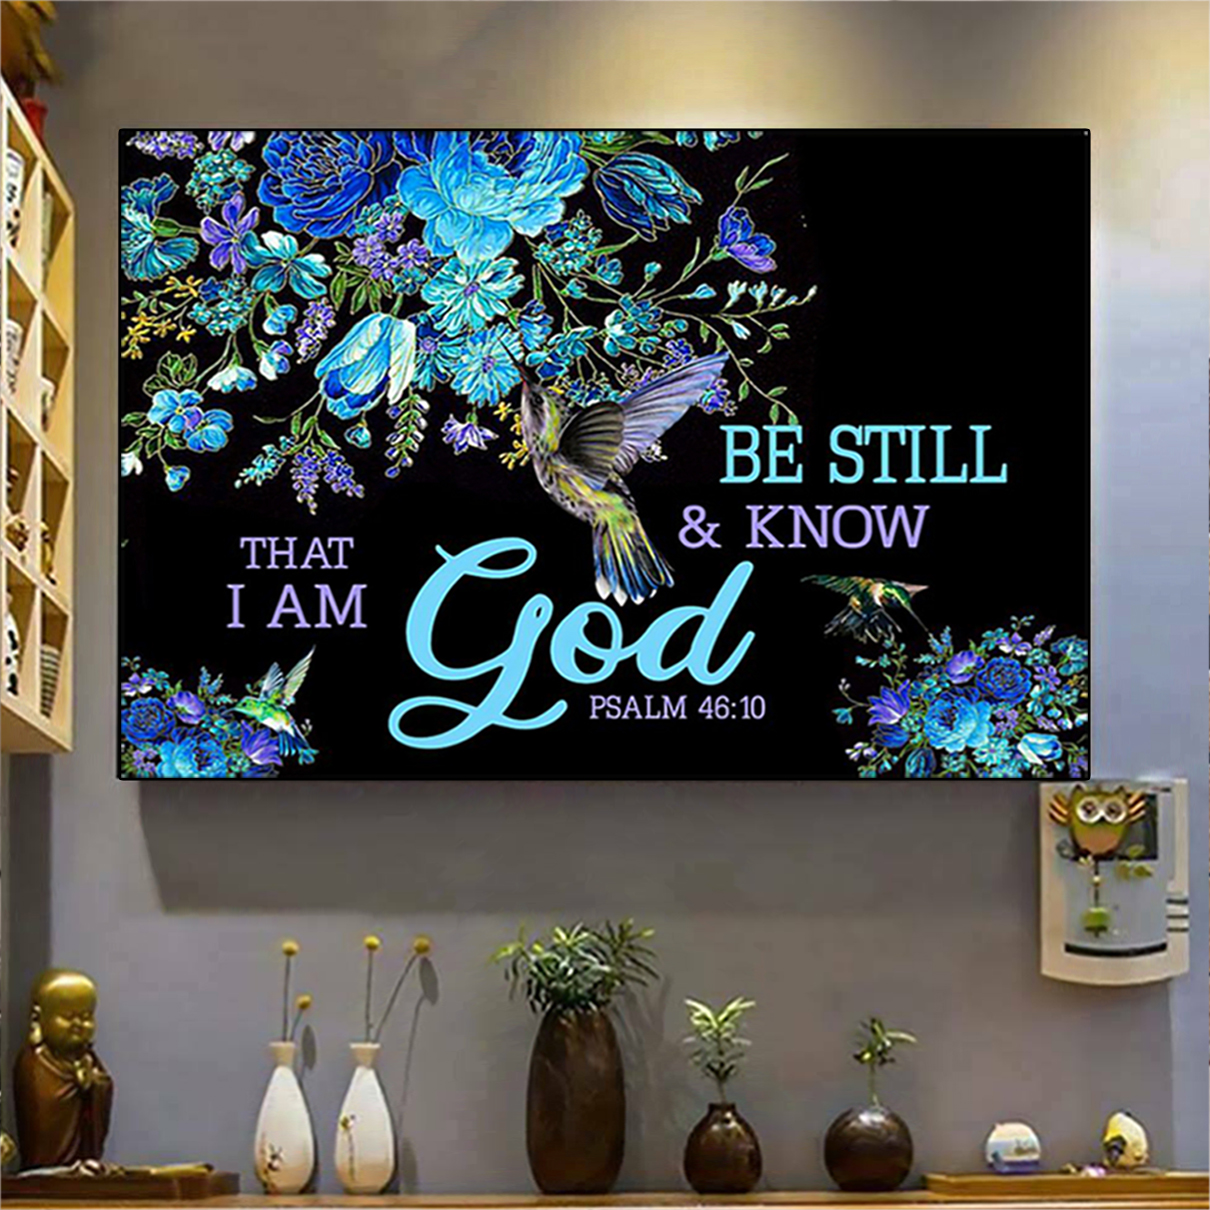 Be still and know that I am God psalm 4610 poster A2